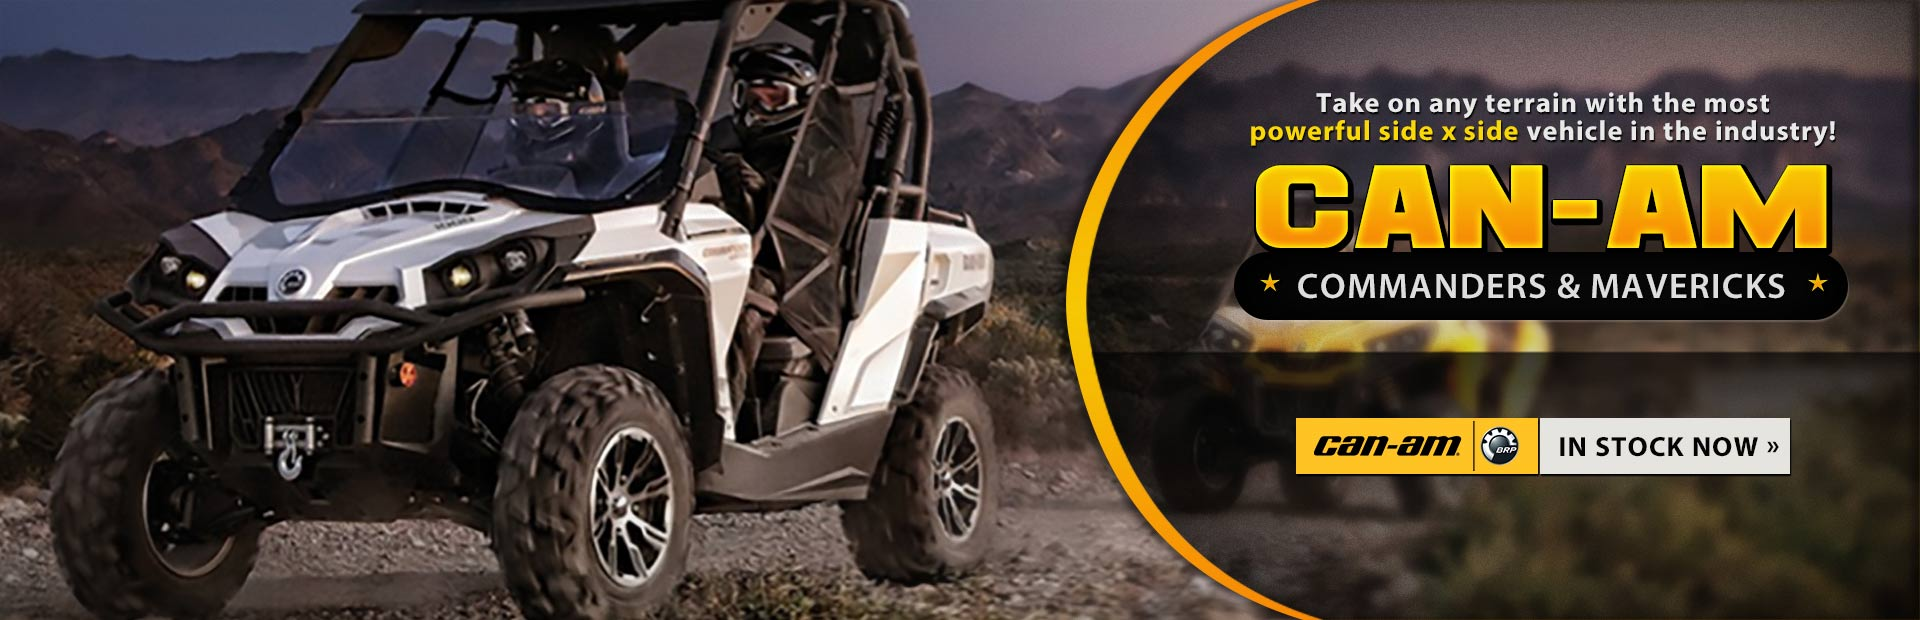 View the new Can-Am Commander and Maverick side x sides.